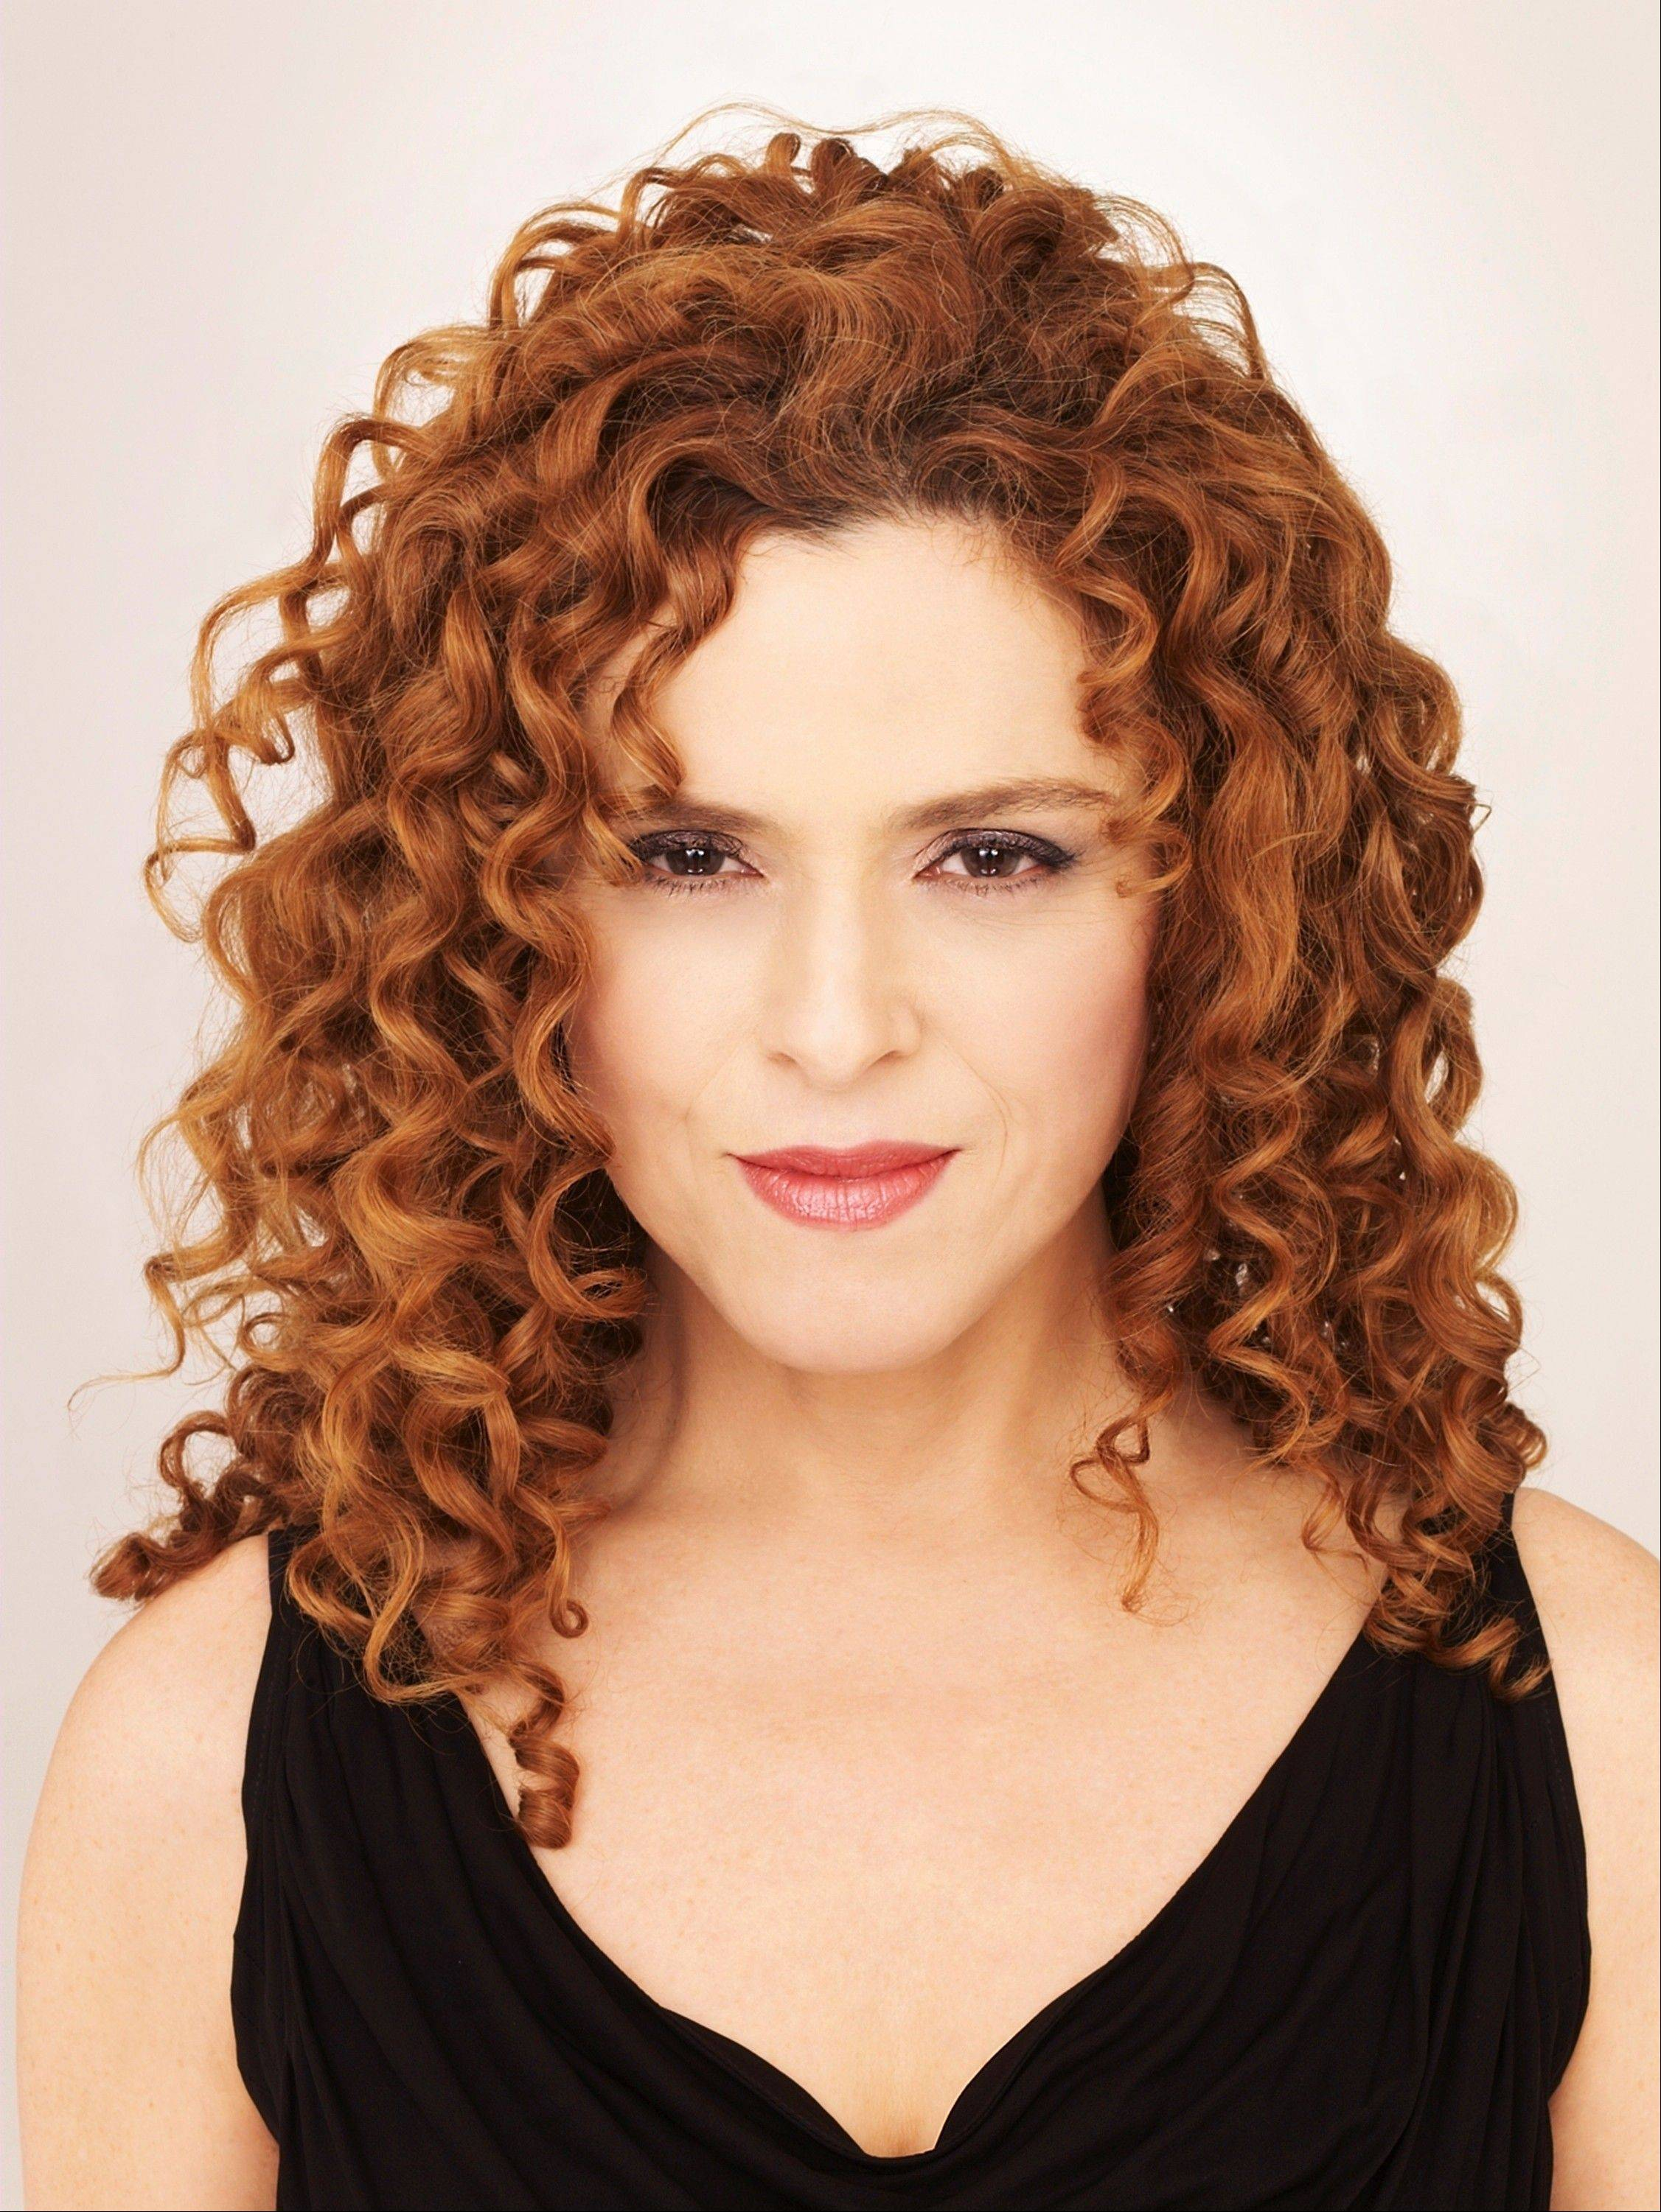 Tony Award-winning Broadway star Bernadette Peters will perform at North Central College's Wentz Concert Hall on Thursday, Oct. 25.